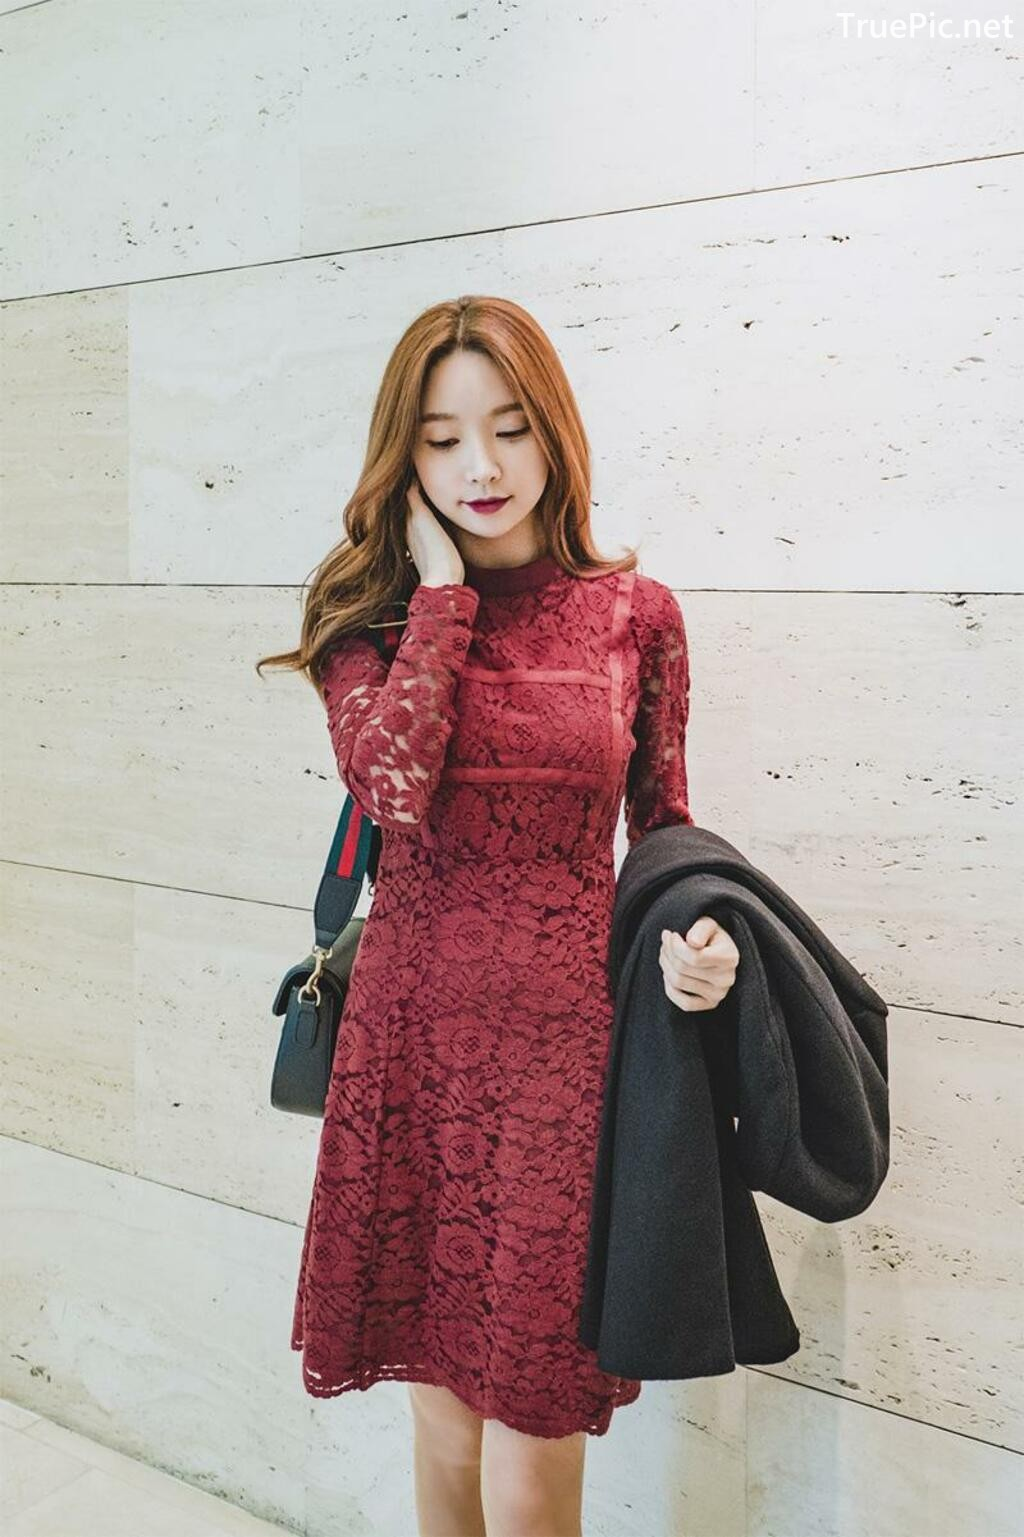 Image-Korean-Fashion-Model-Park-Soo-Yeon-Beautiful-Winter-Dress-Collection-TruePic.net- Picture-3